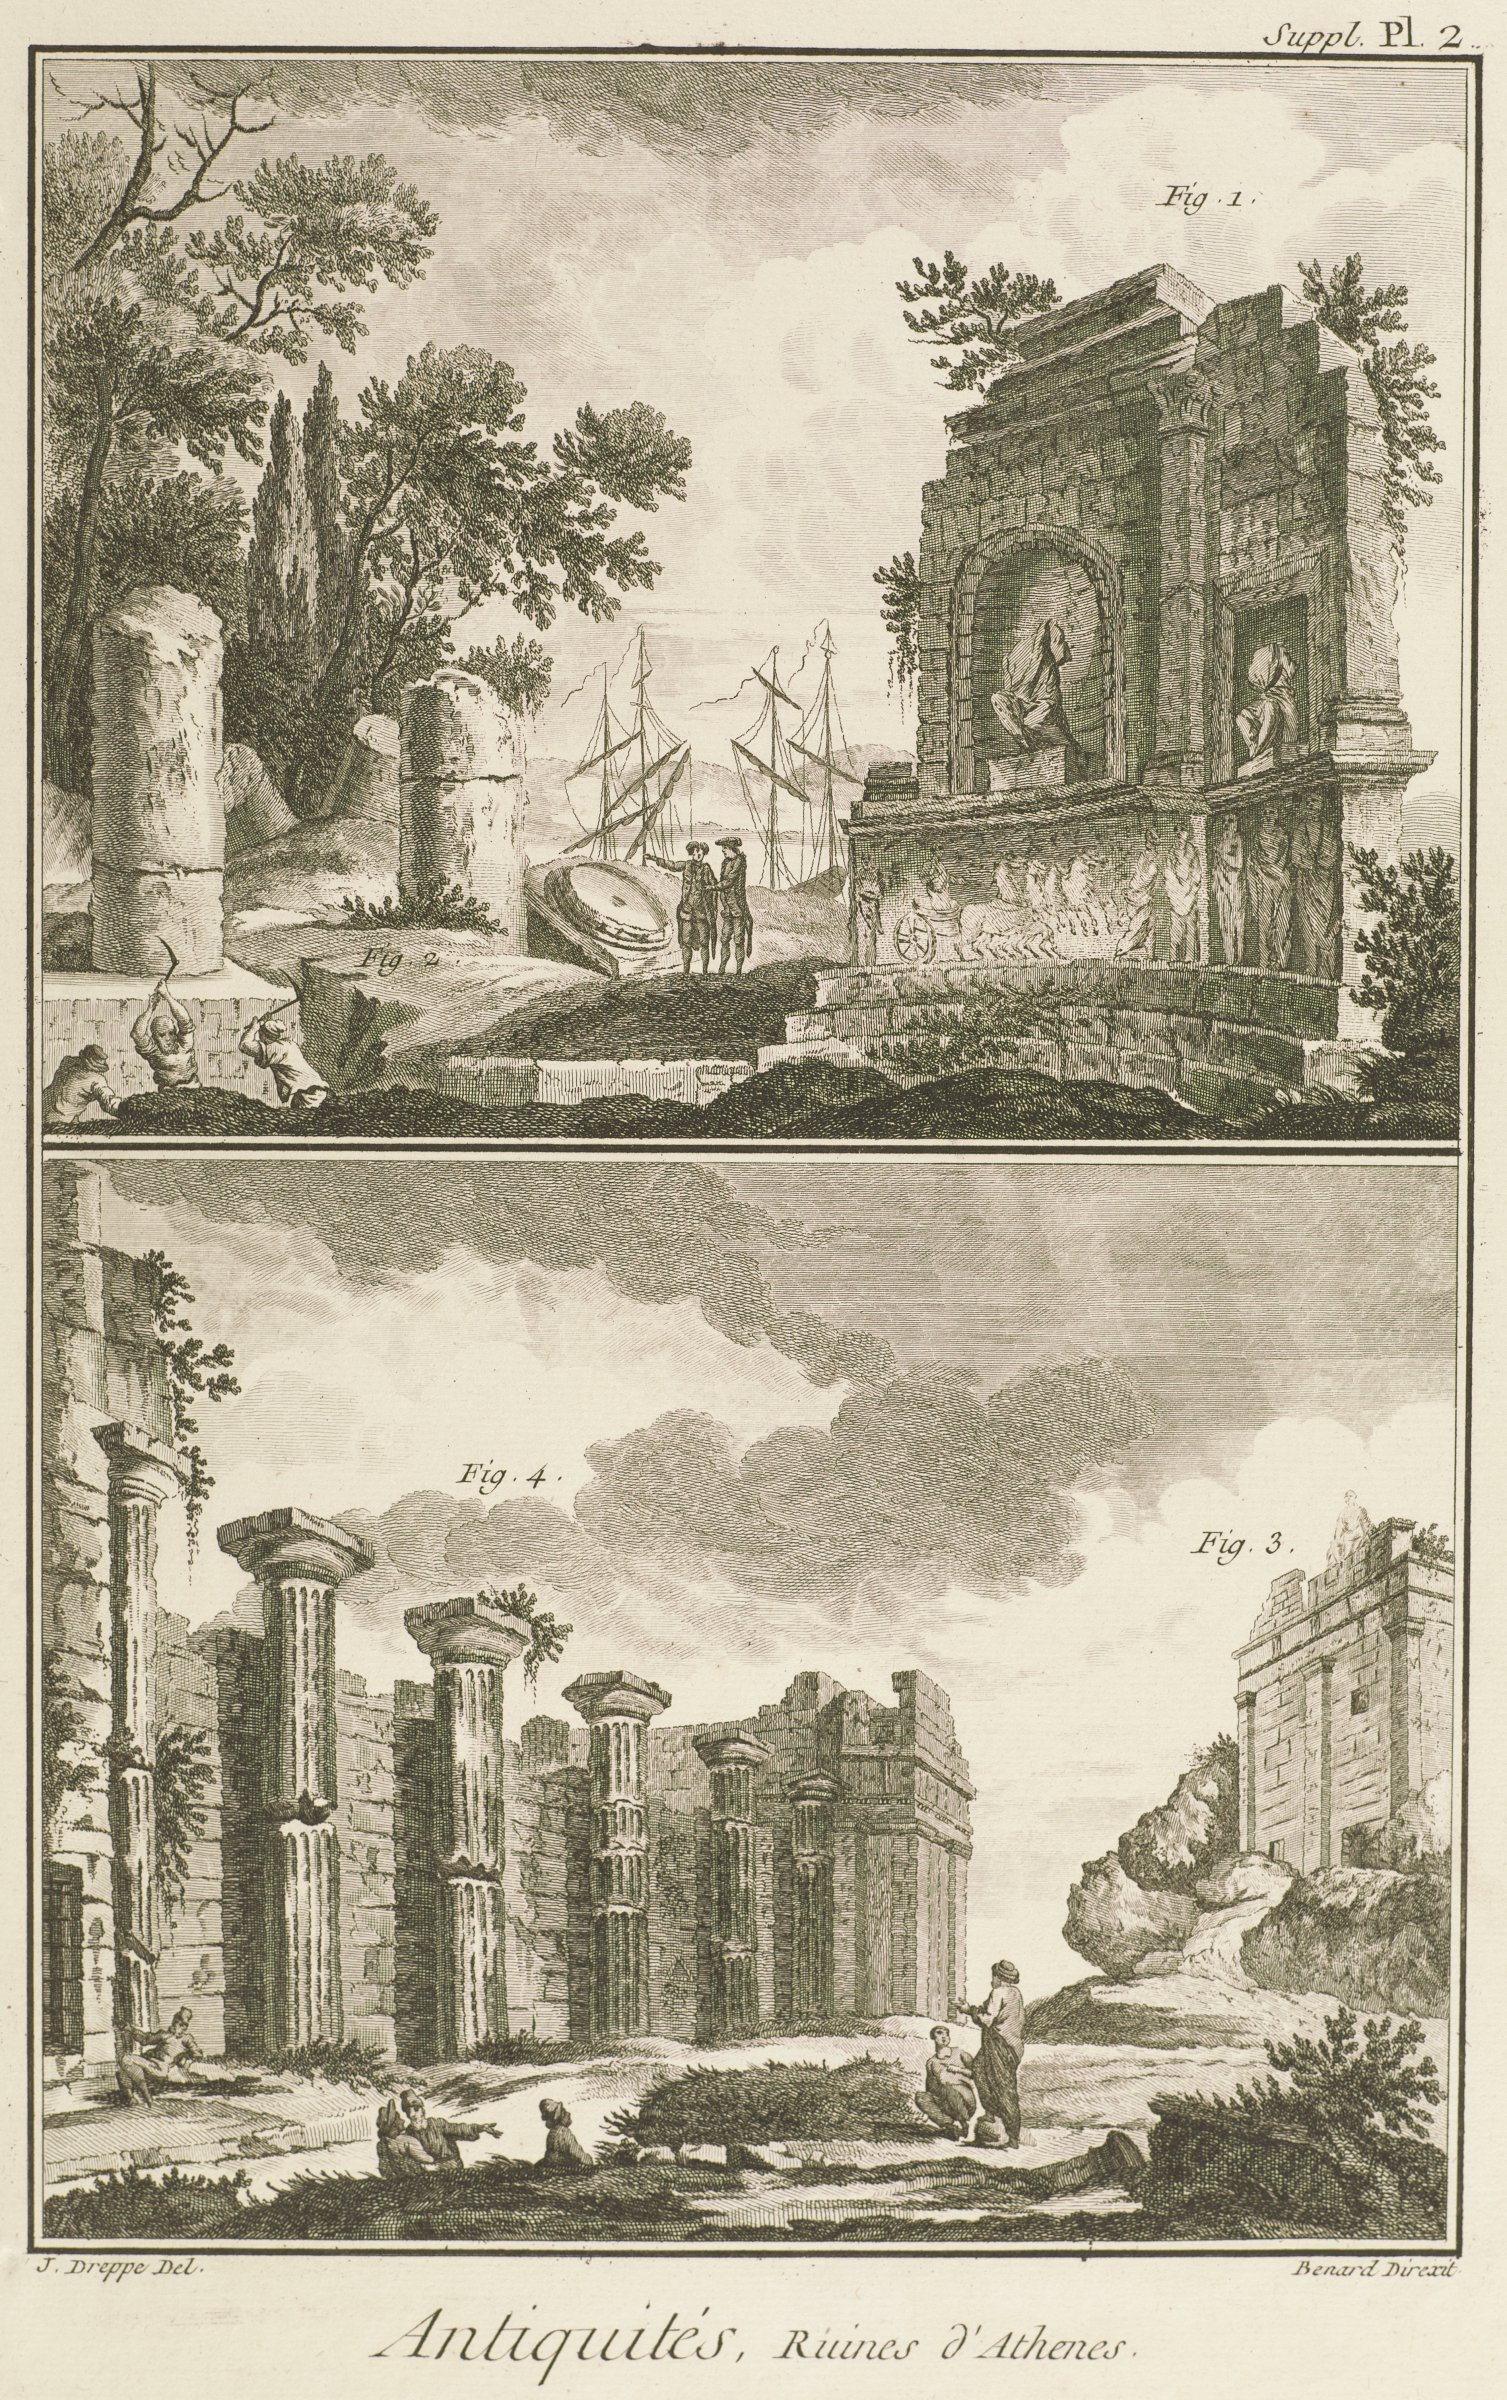 The upper register portray the ruins of the Philopappos monument and the temple of Mount Laurium, and the lower register portrays the Thrasyllus monument and Propylaea.